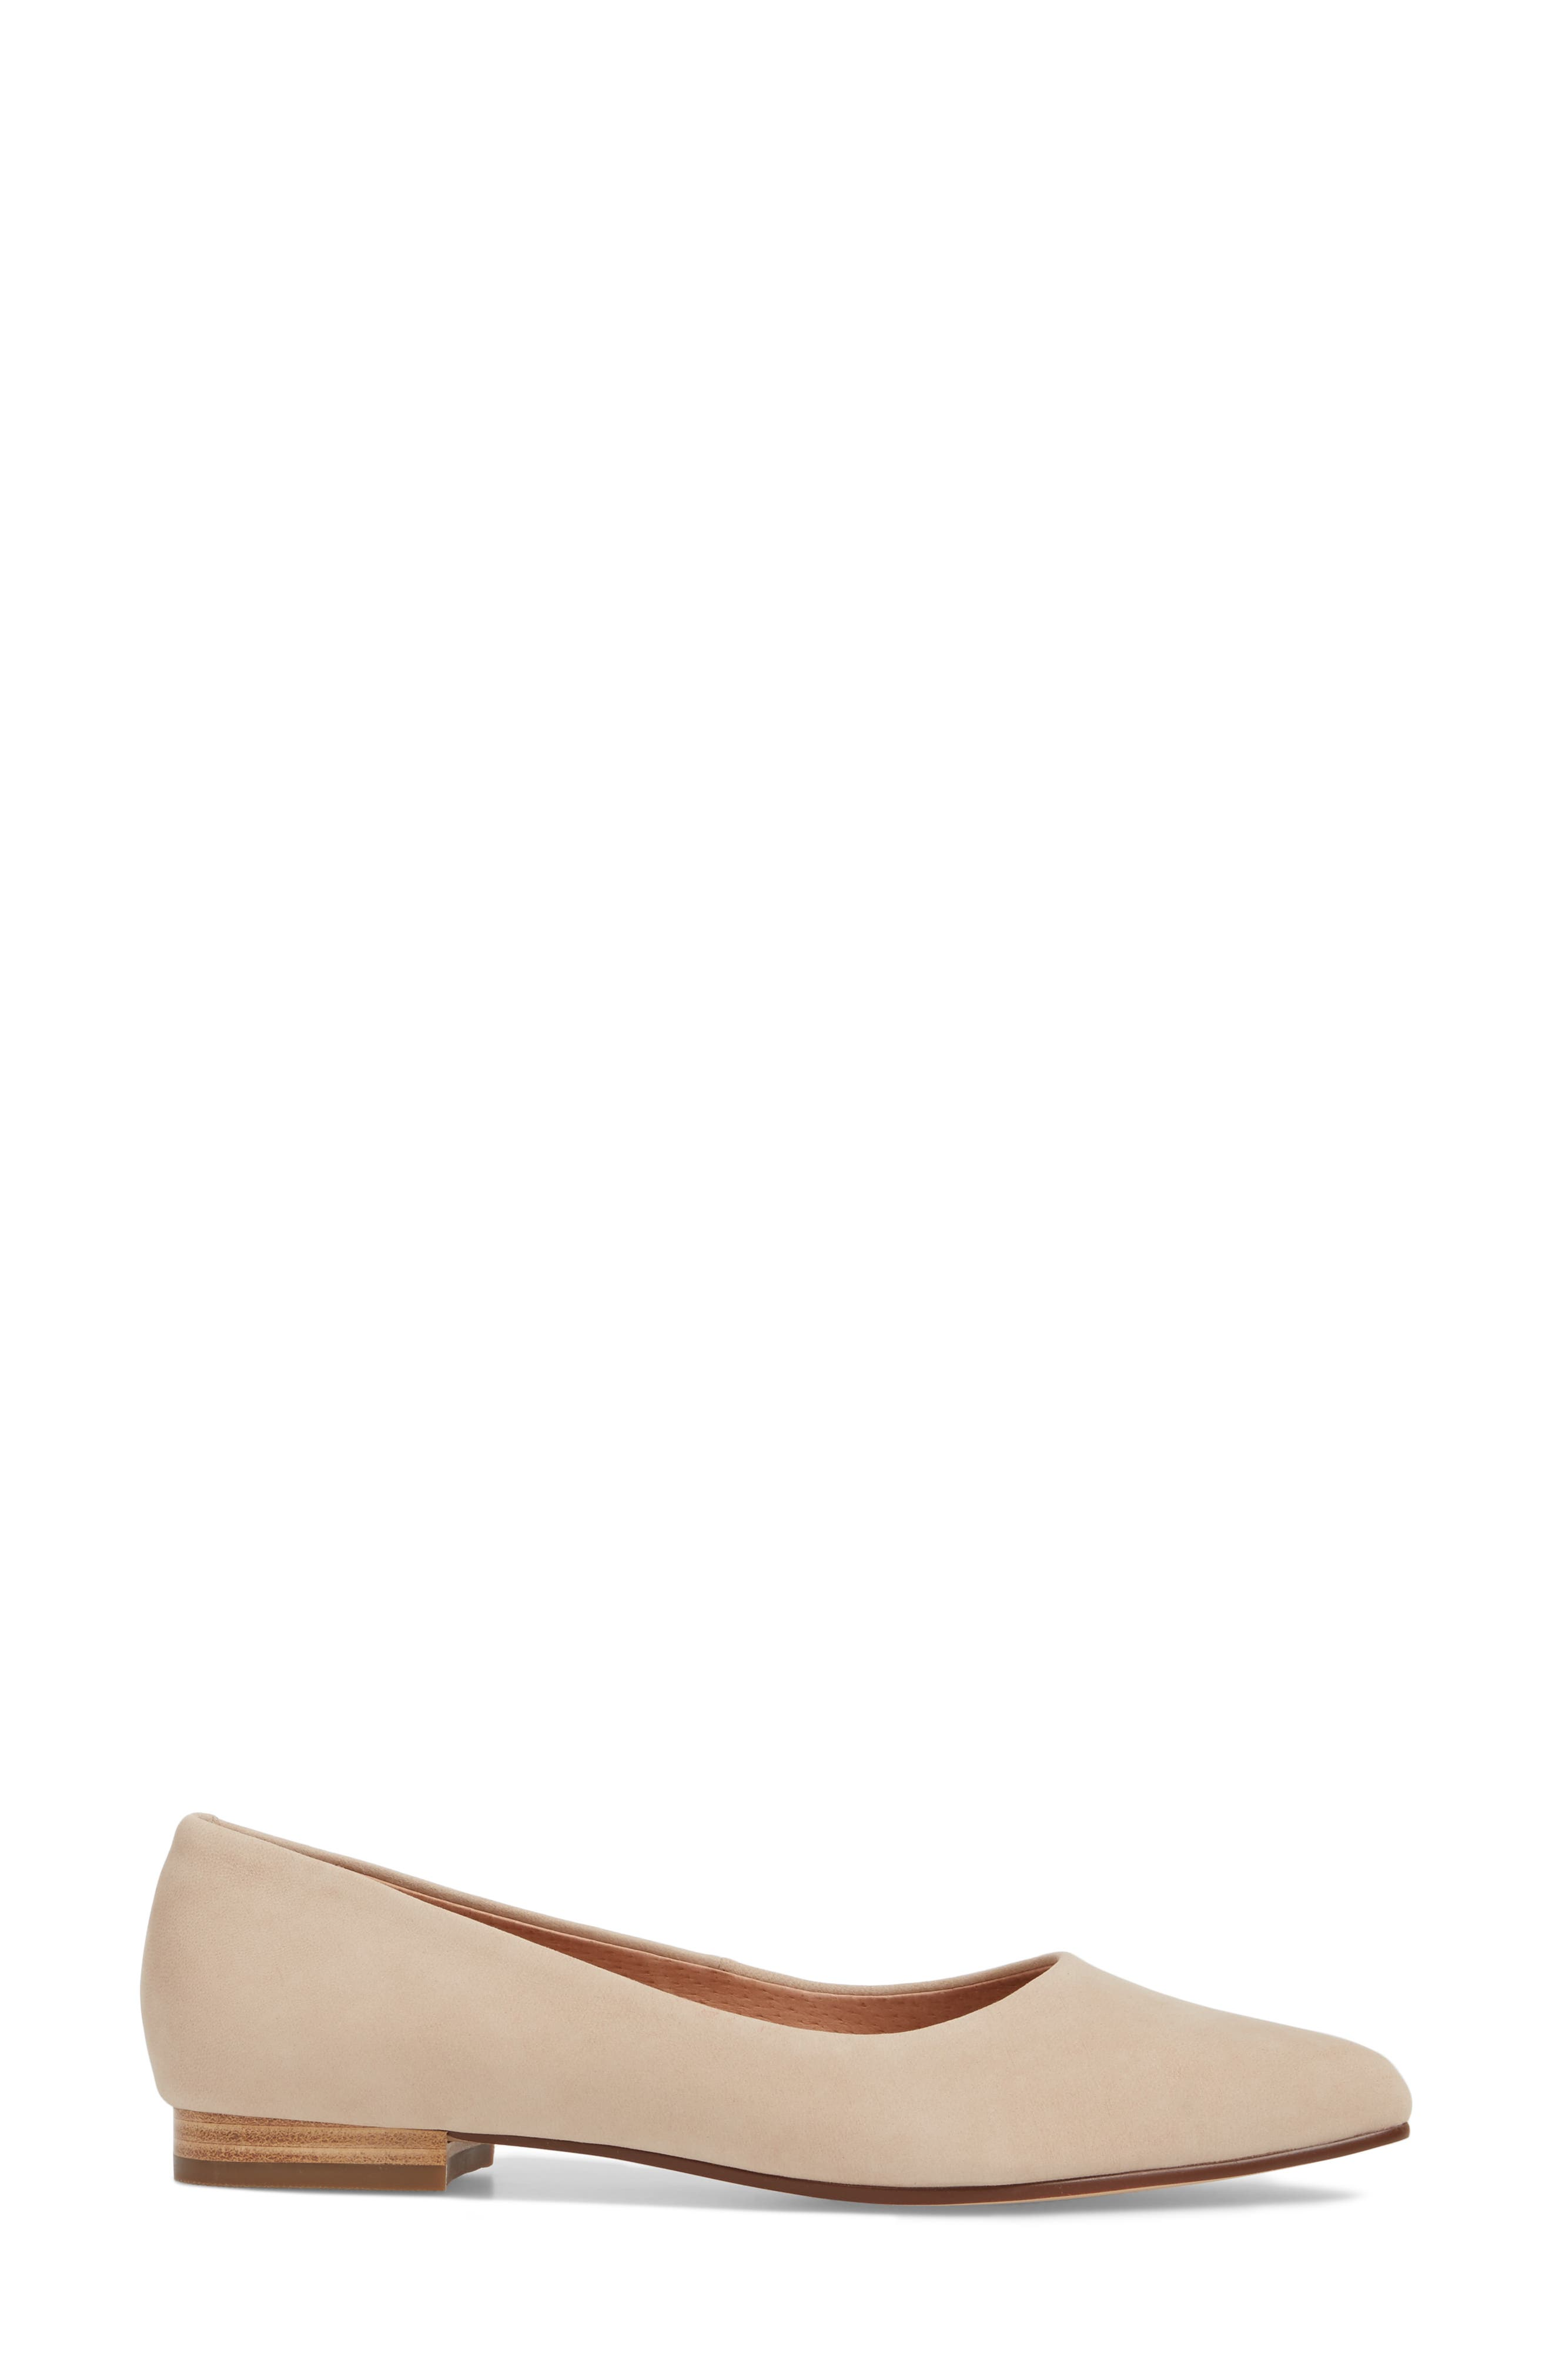 Luna Pointy Toe Flat,                             Alternate thumbnail 3, color,                             Nude Nubuck